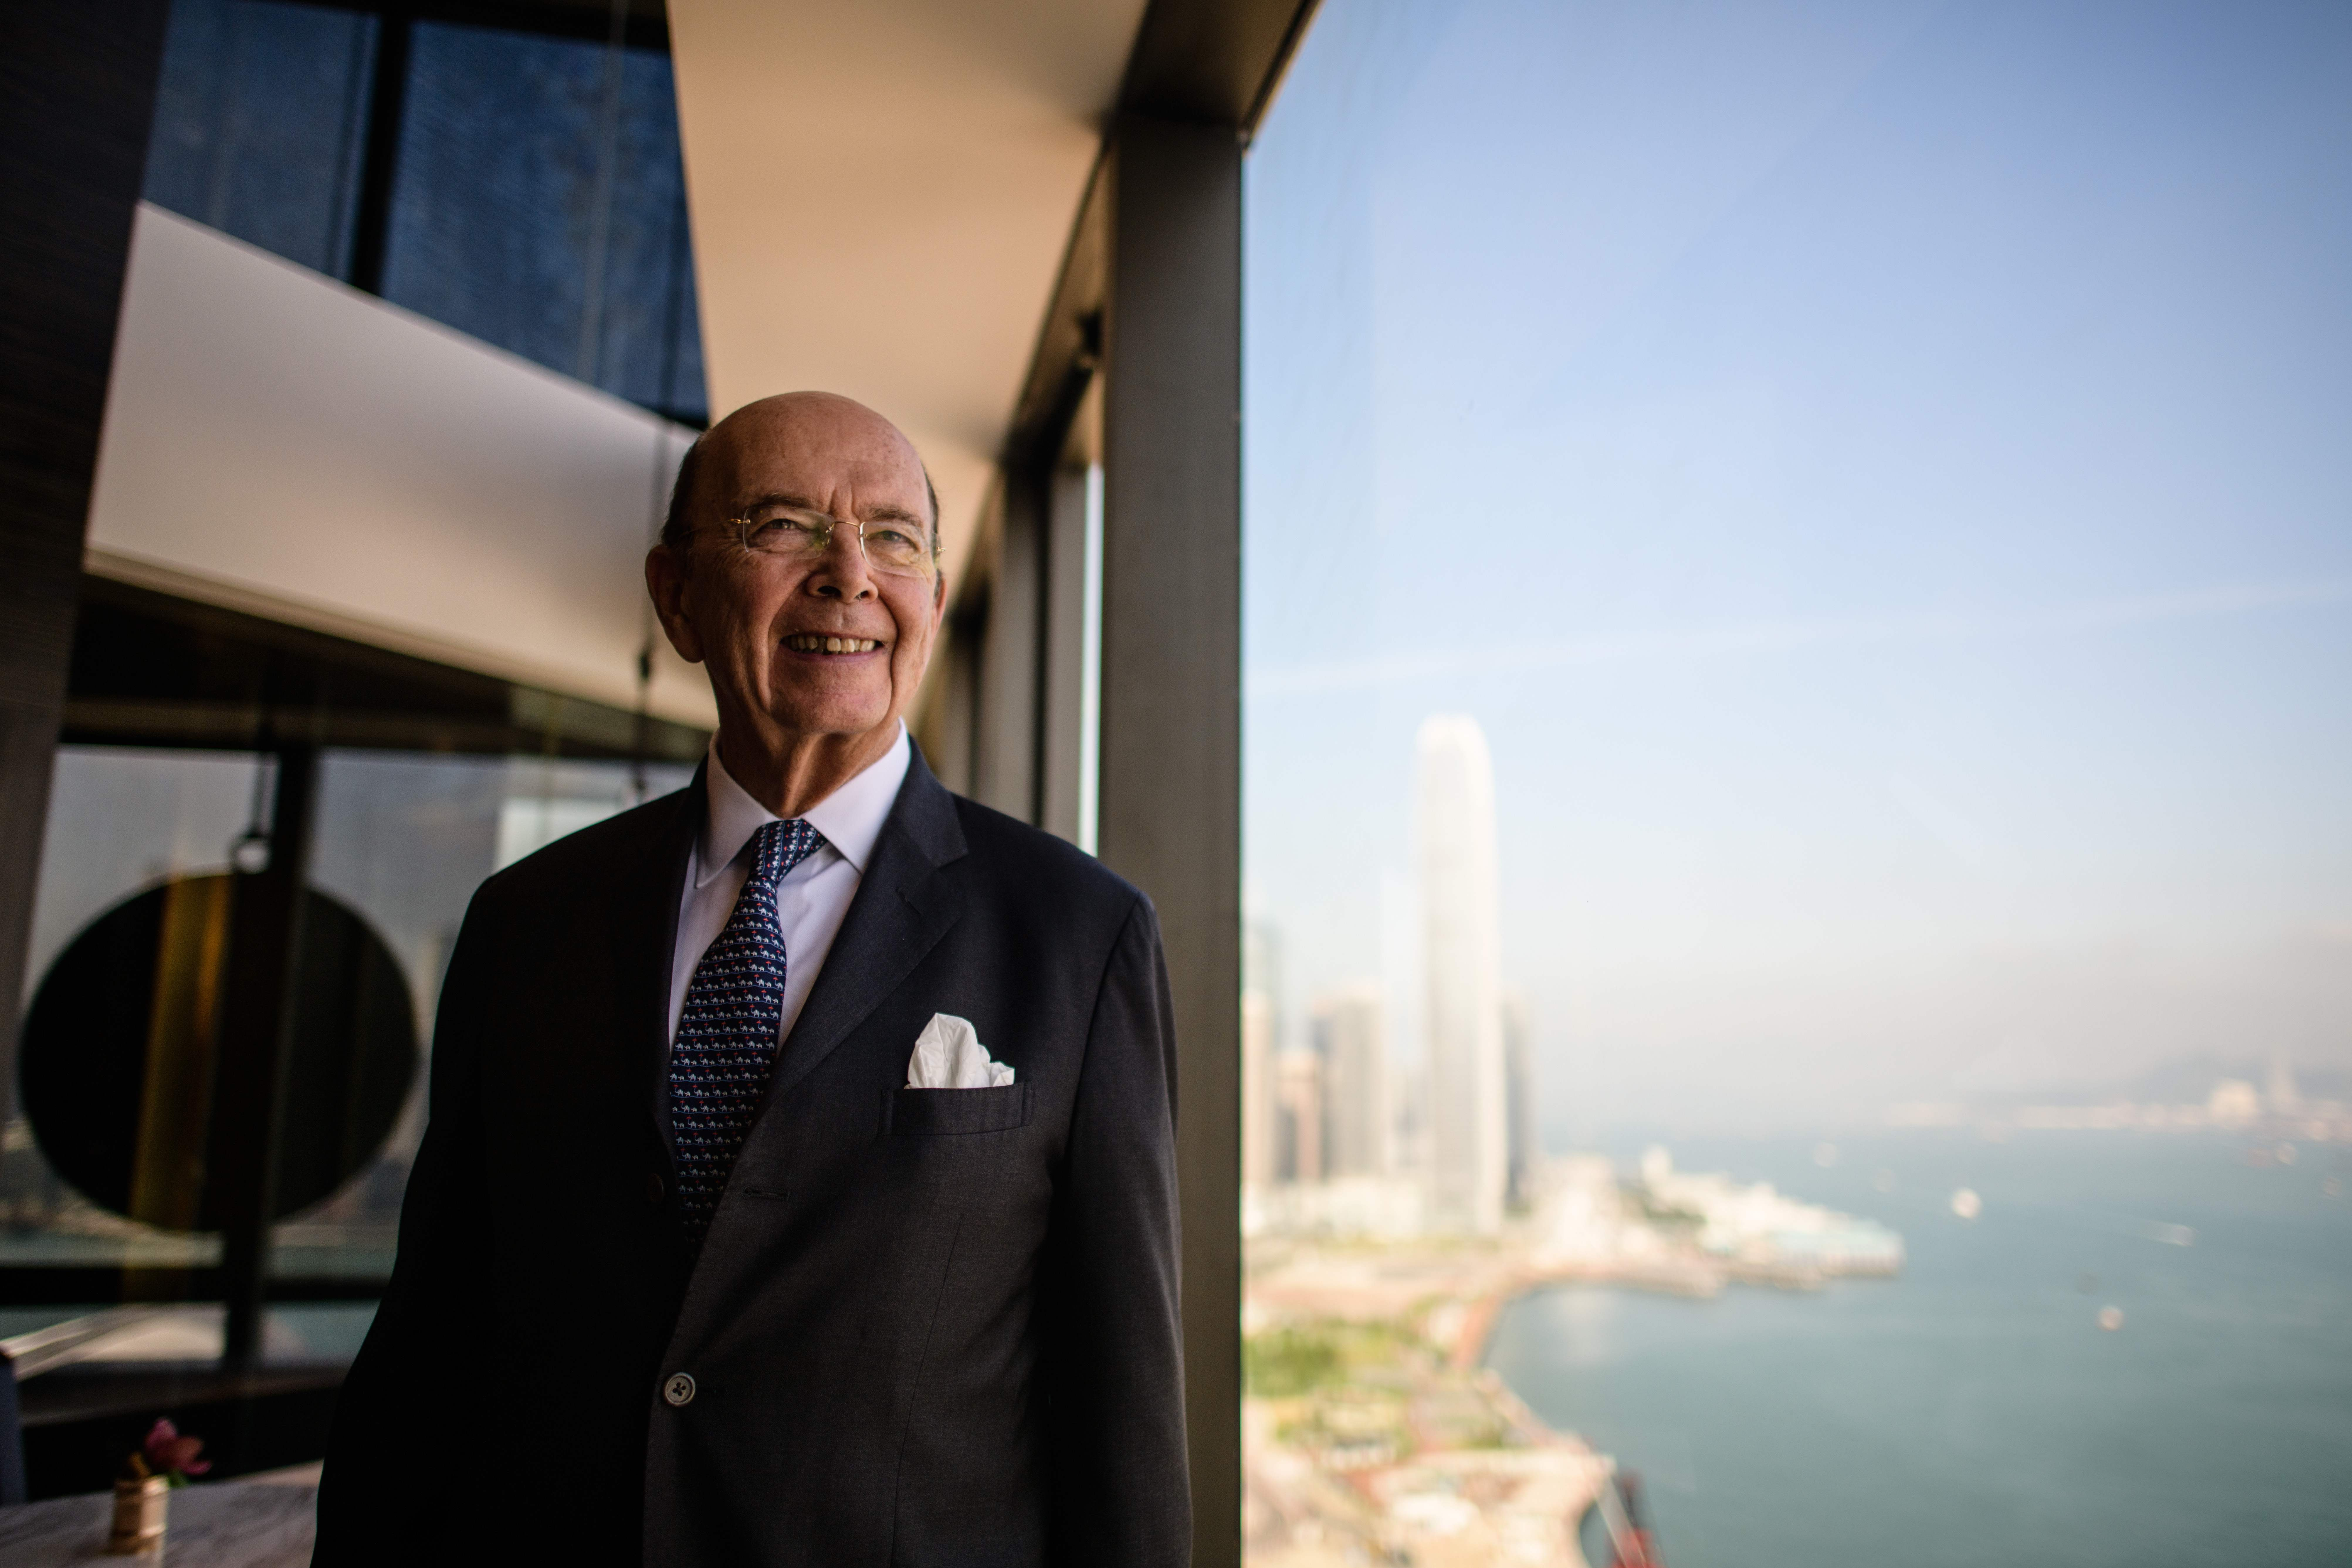 Former Commerce Secretary Wilbur Ross poses before a round table briefing in Hong Kong on Sept. 27, 2017. (Anthony Wallace/AFP via Getty Images)